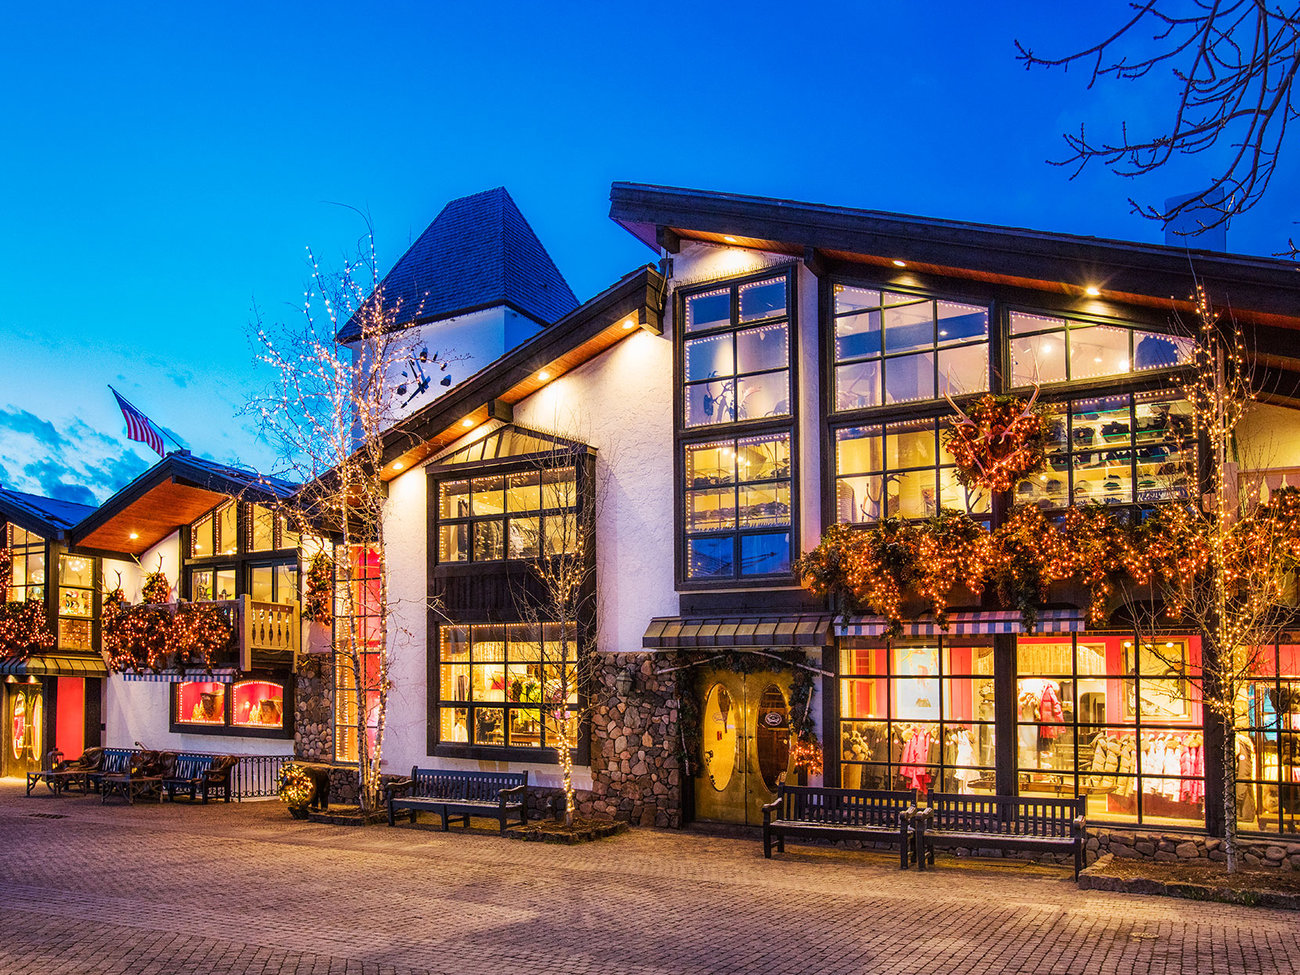 Gorsuch Store in Vail